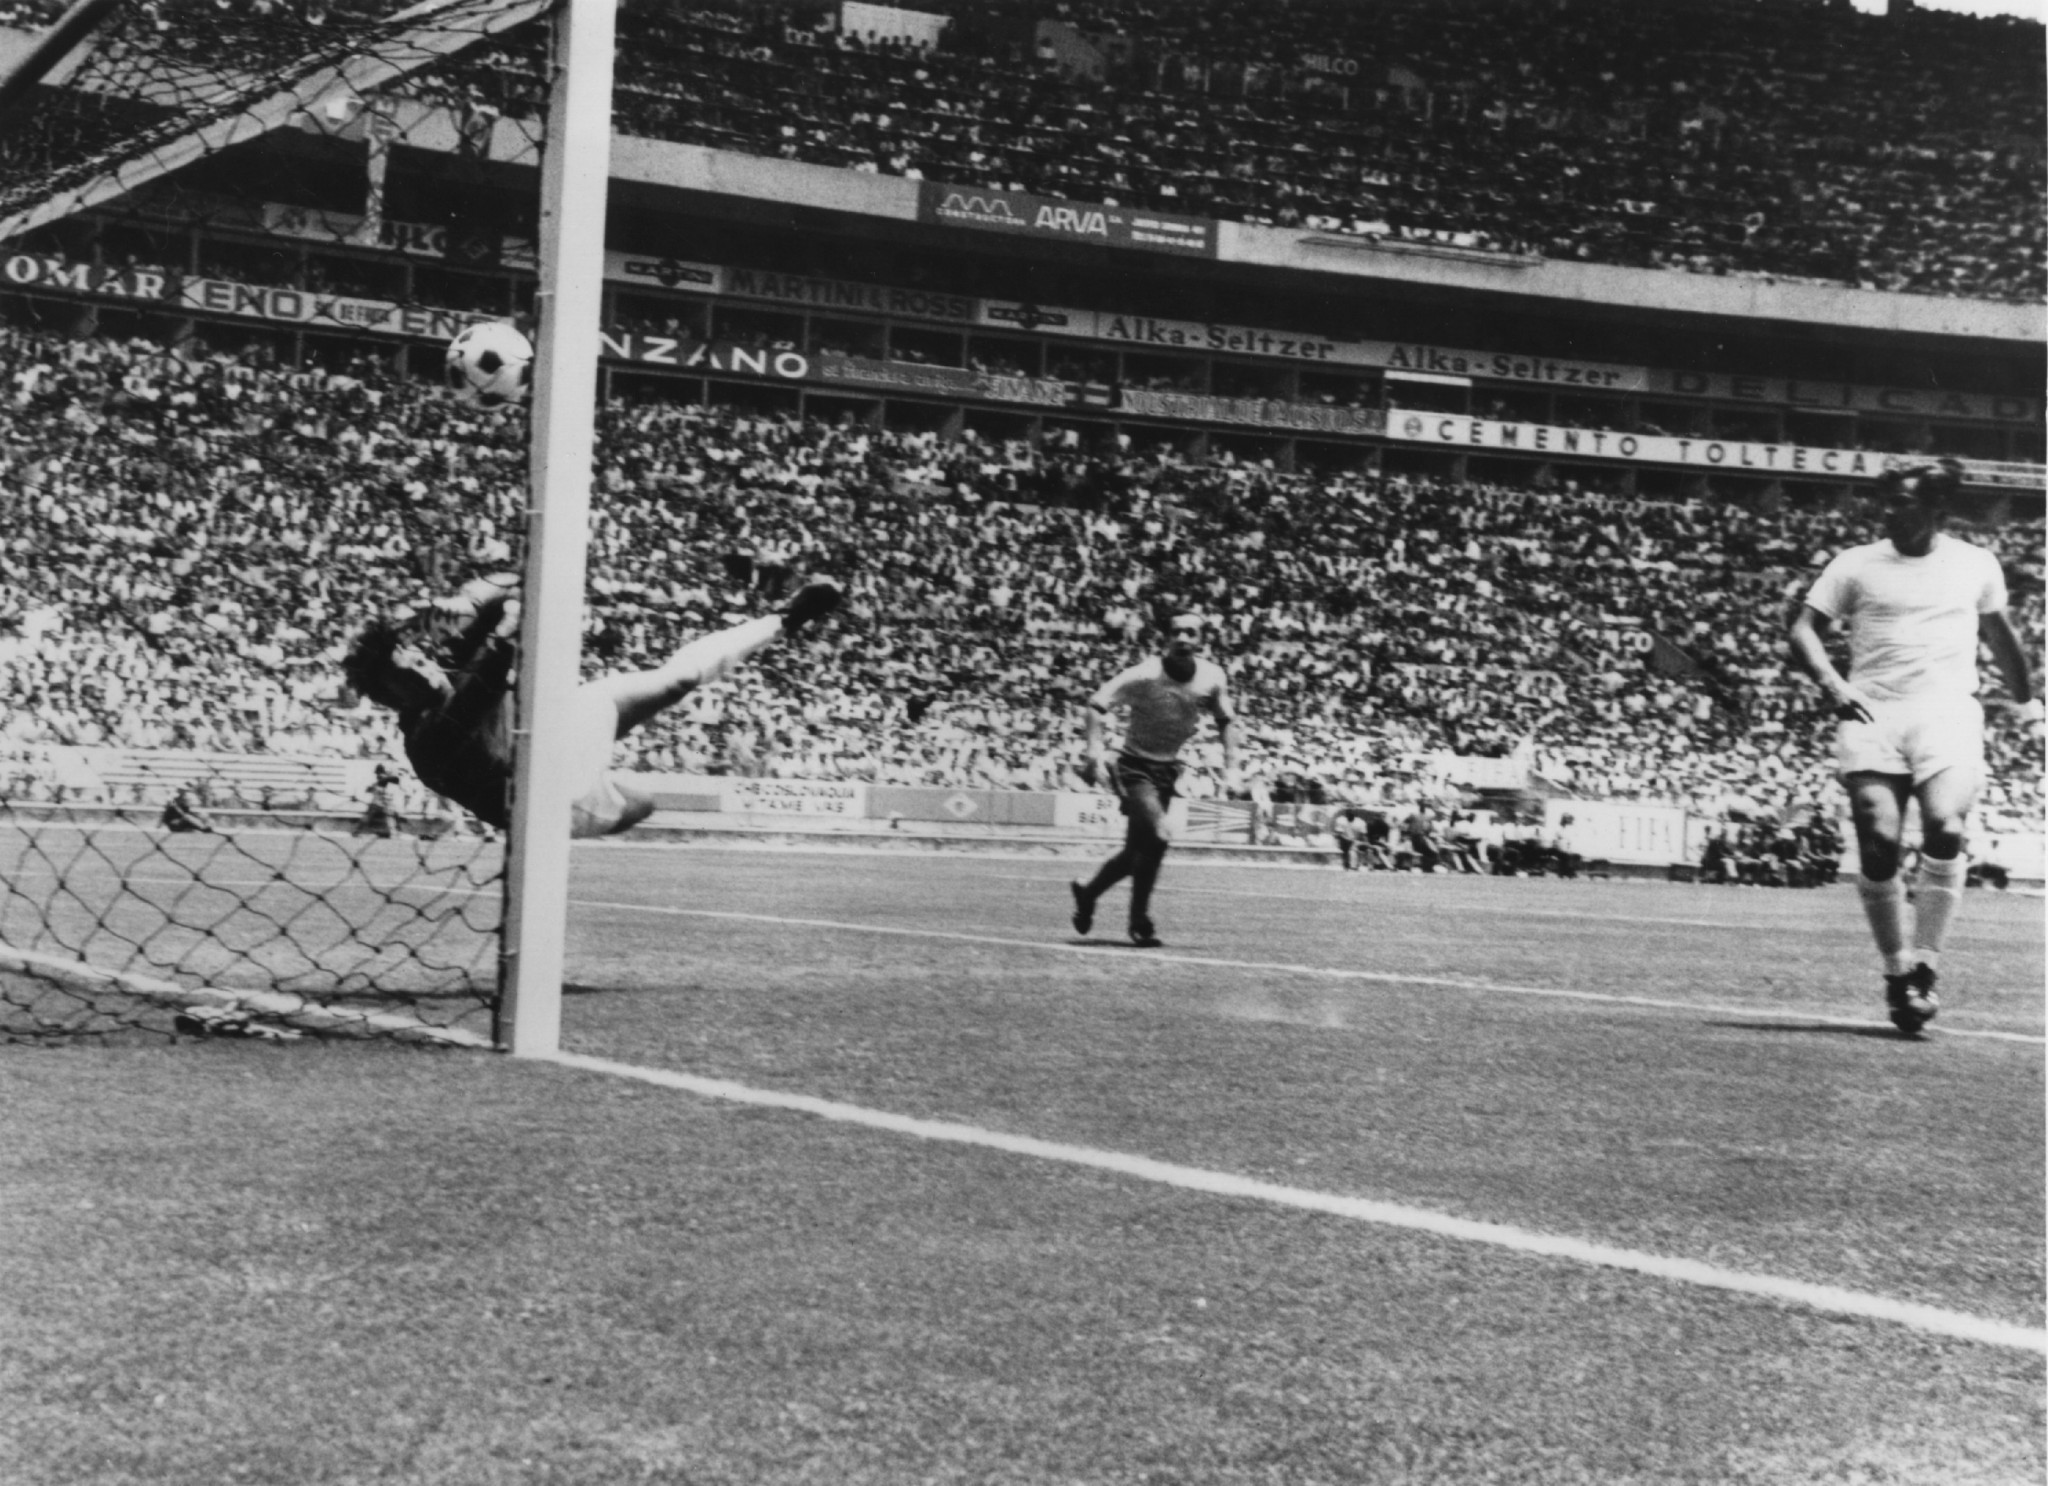 Gordan Banks made what is viewed as one of the greatest saves of all time at the tournament, denying Pelé ©Getty Images